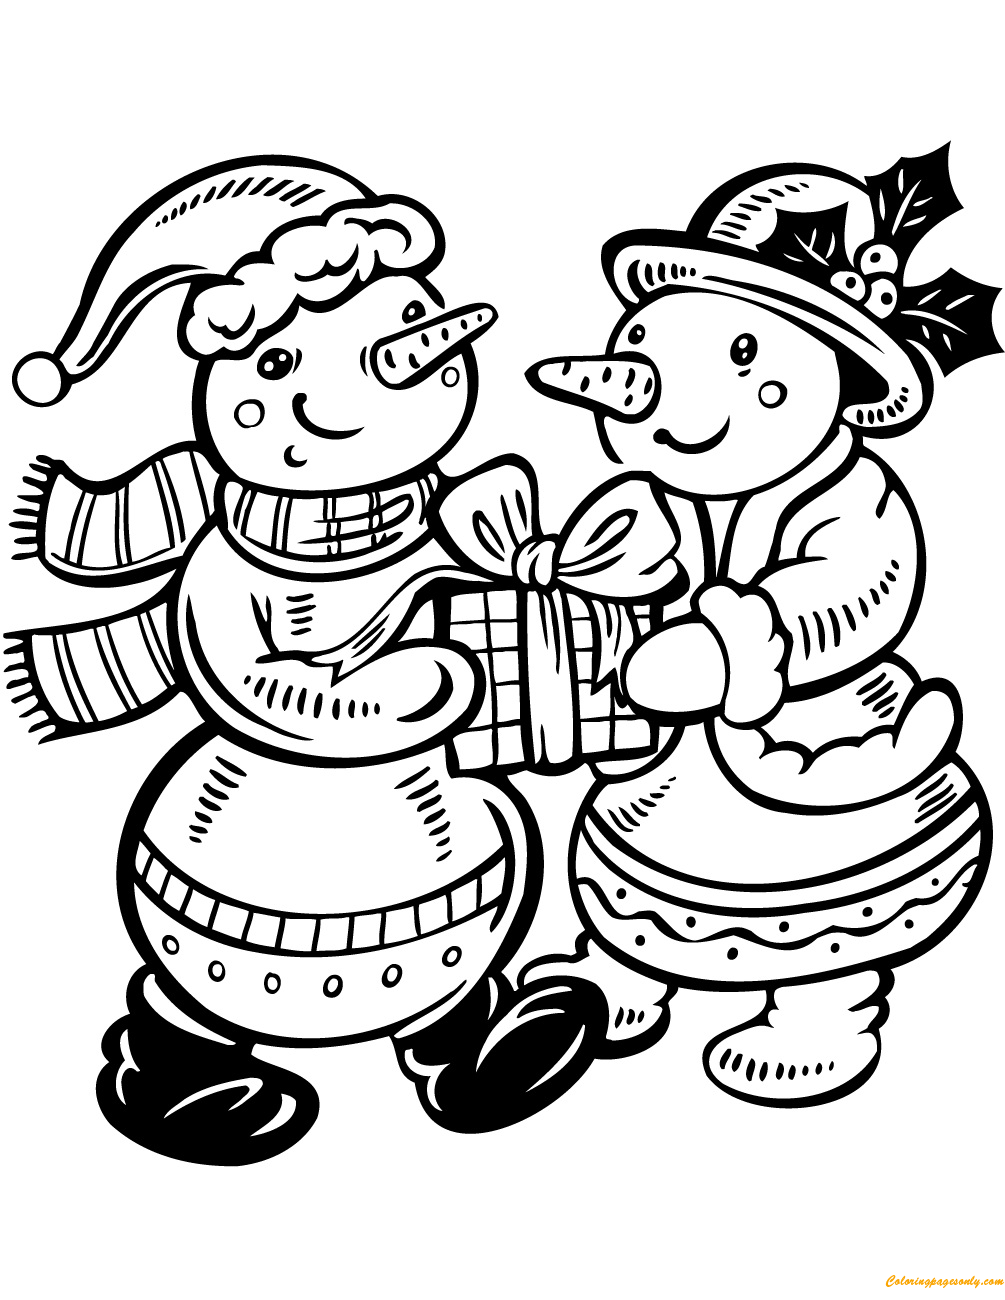 childrens coloring pages snowman free - photo#46